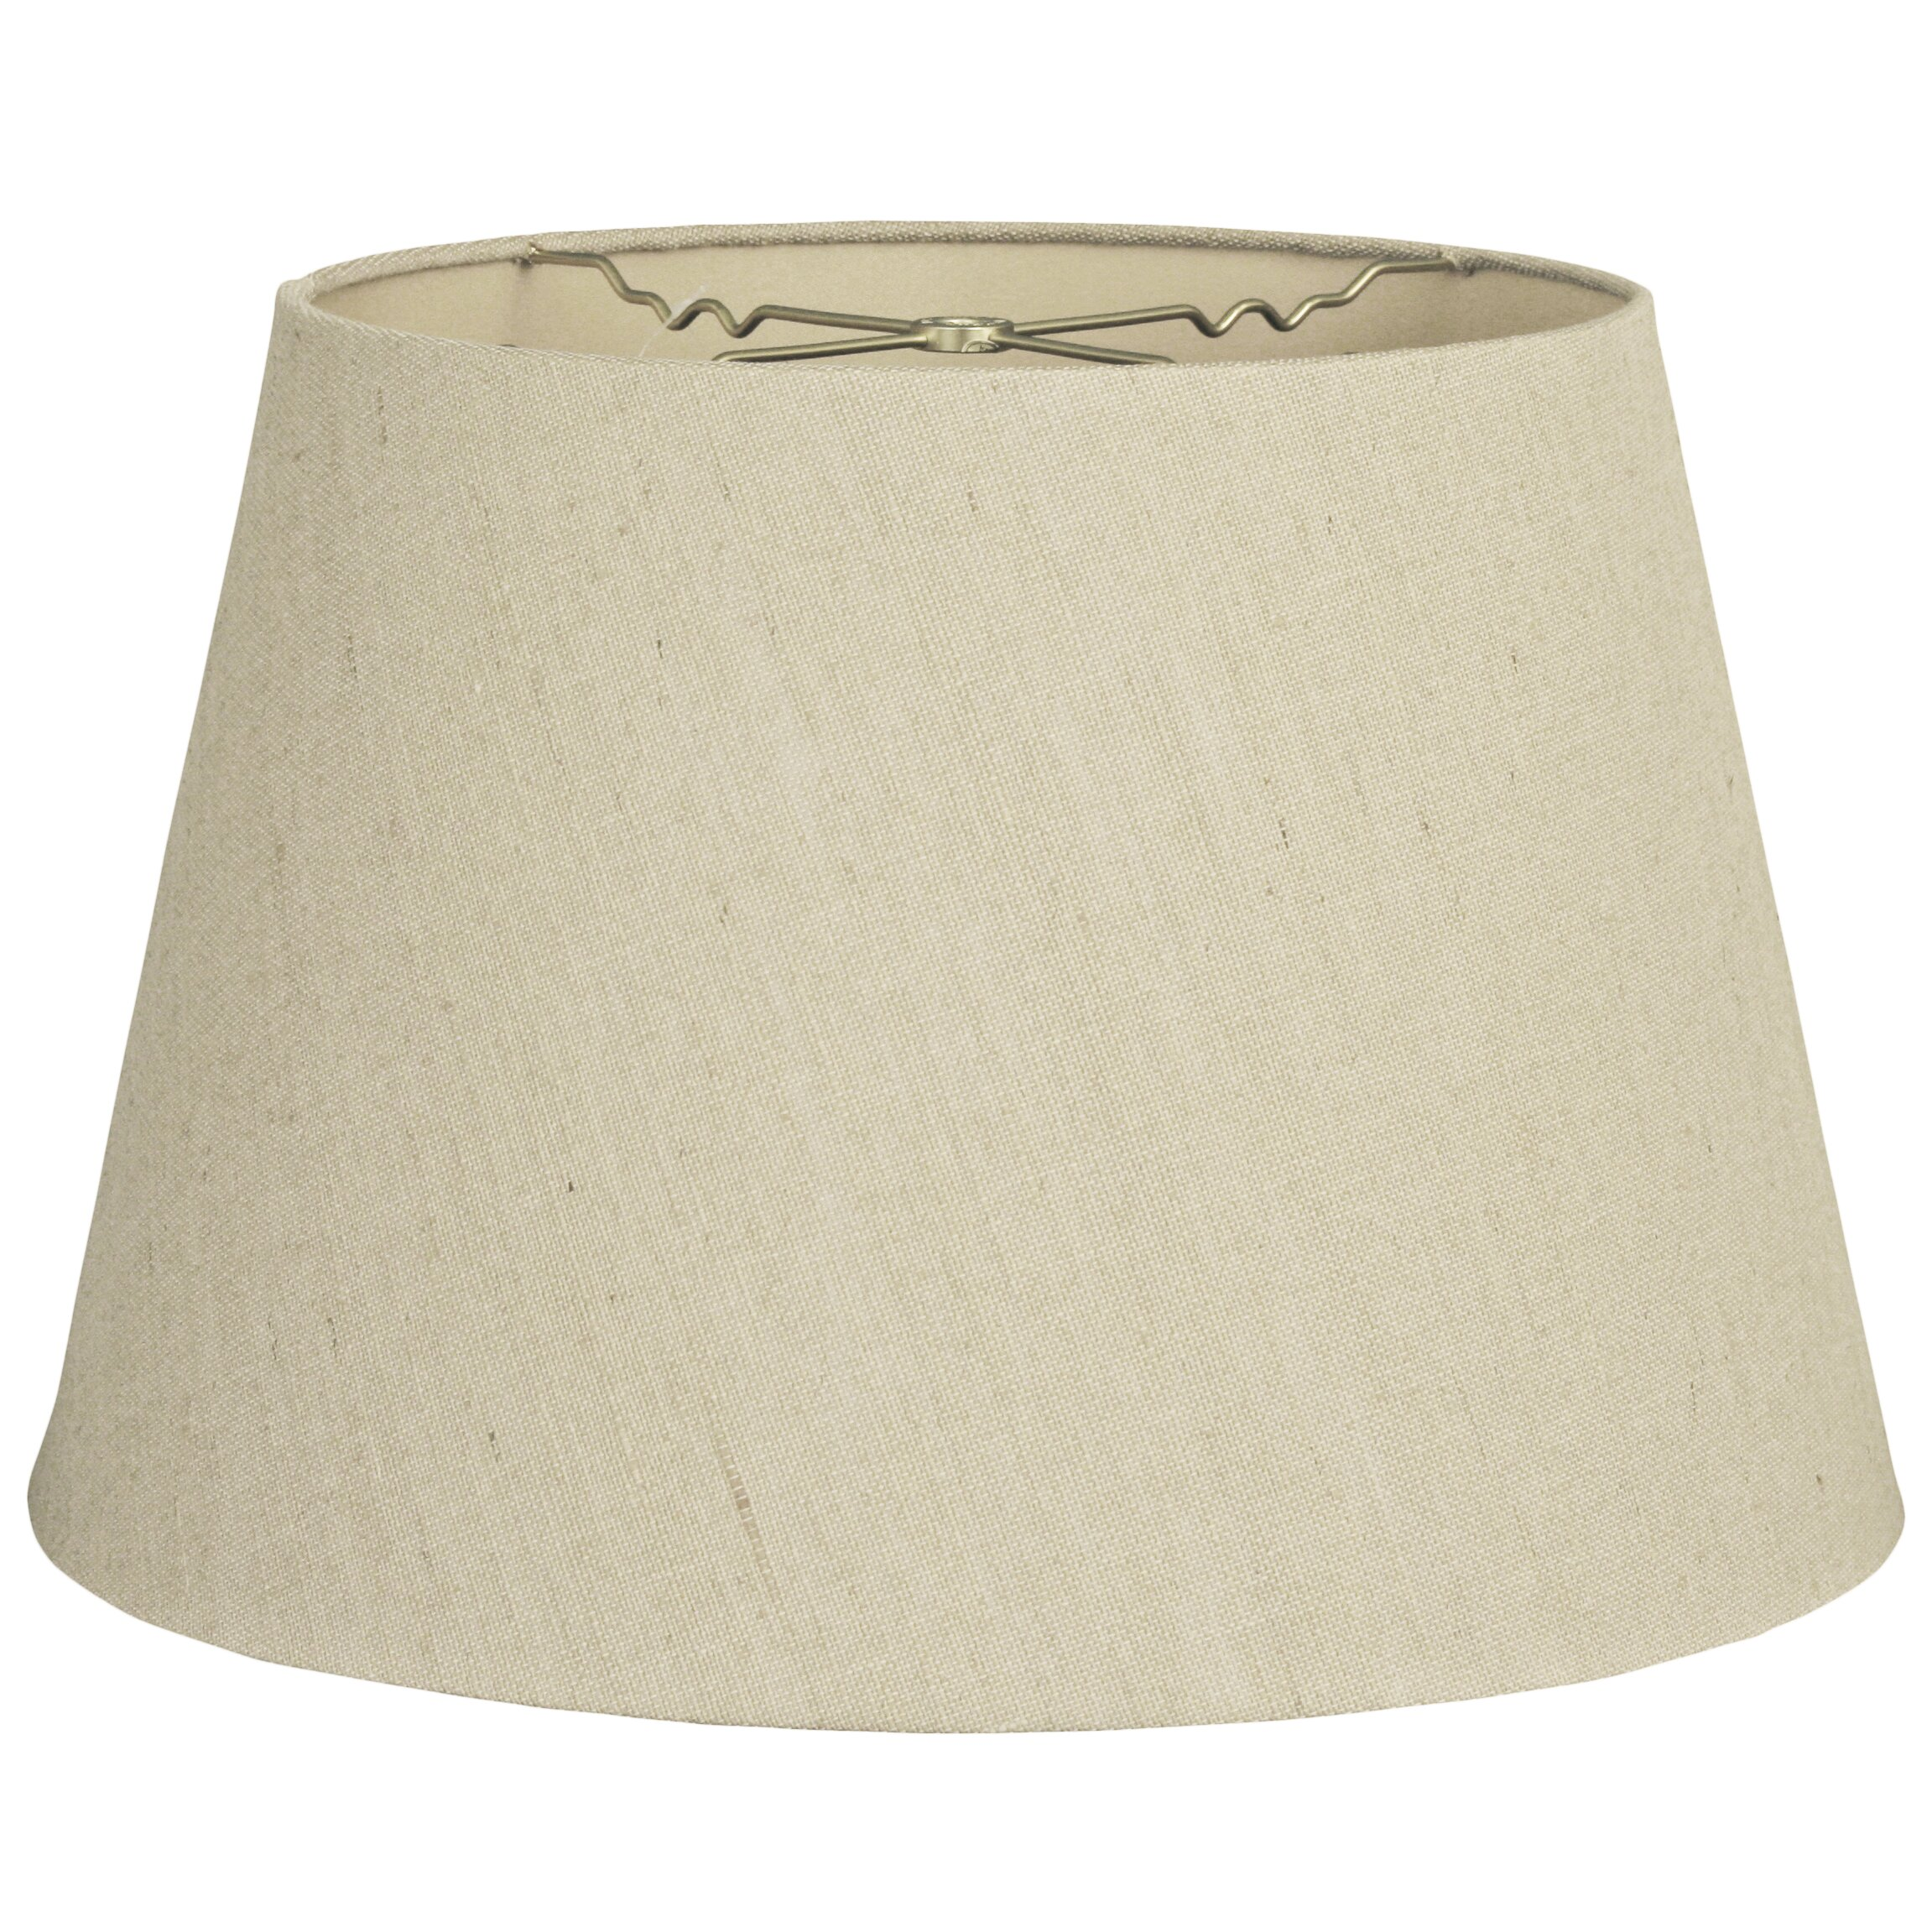 12 timeless linen tapered shallow drum lamp shade by royaldesigns. Black Bedroom Furniture Sets. Home Design Ideas